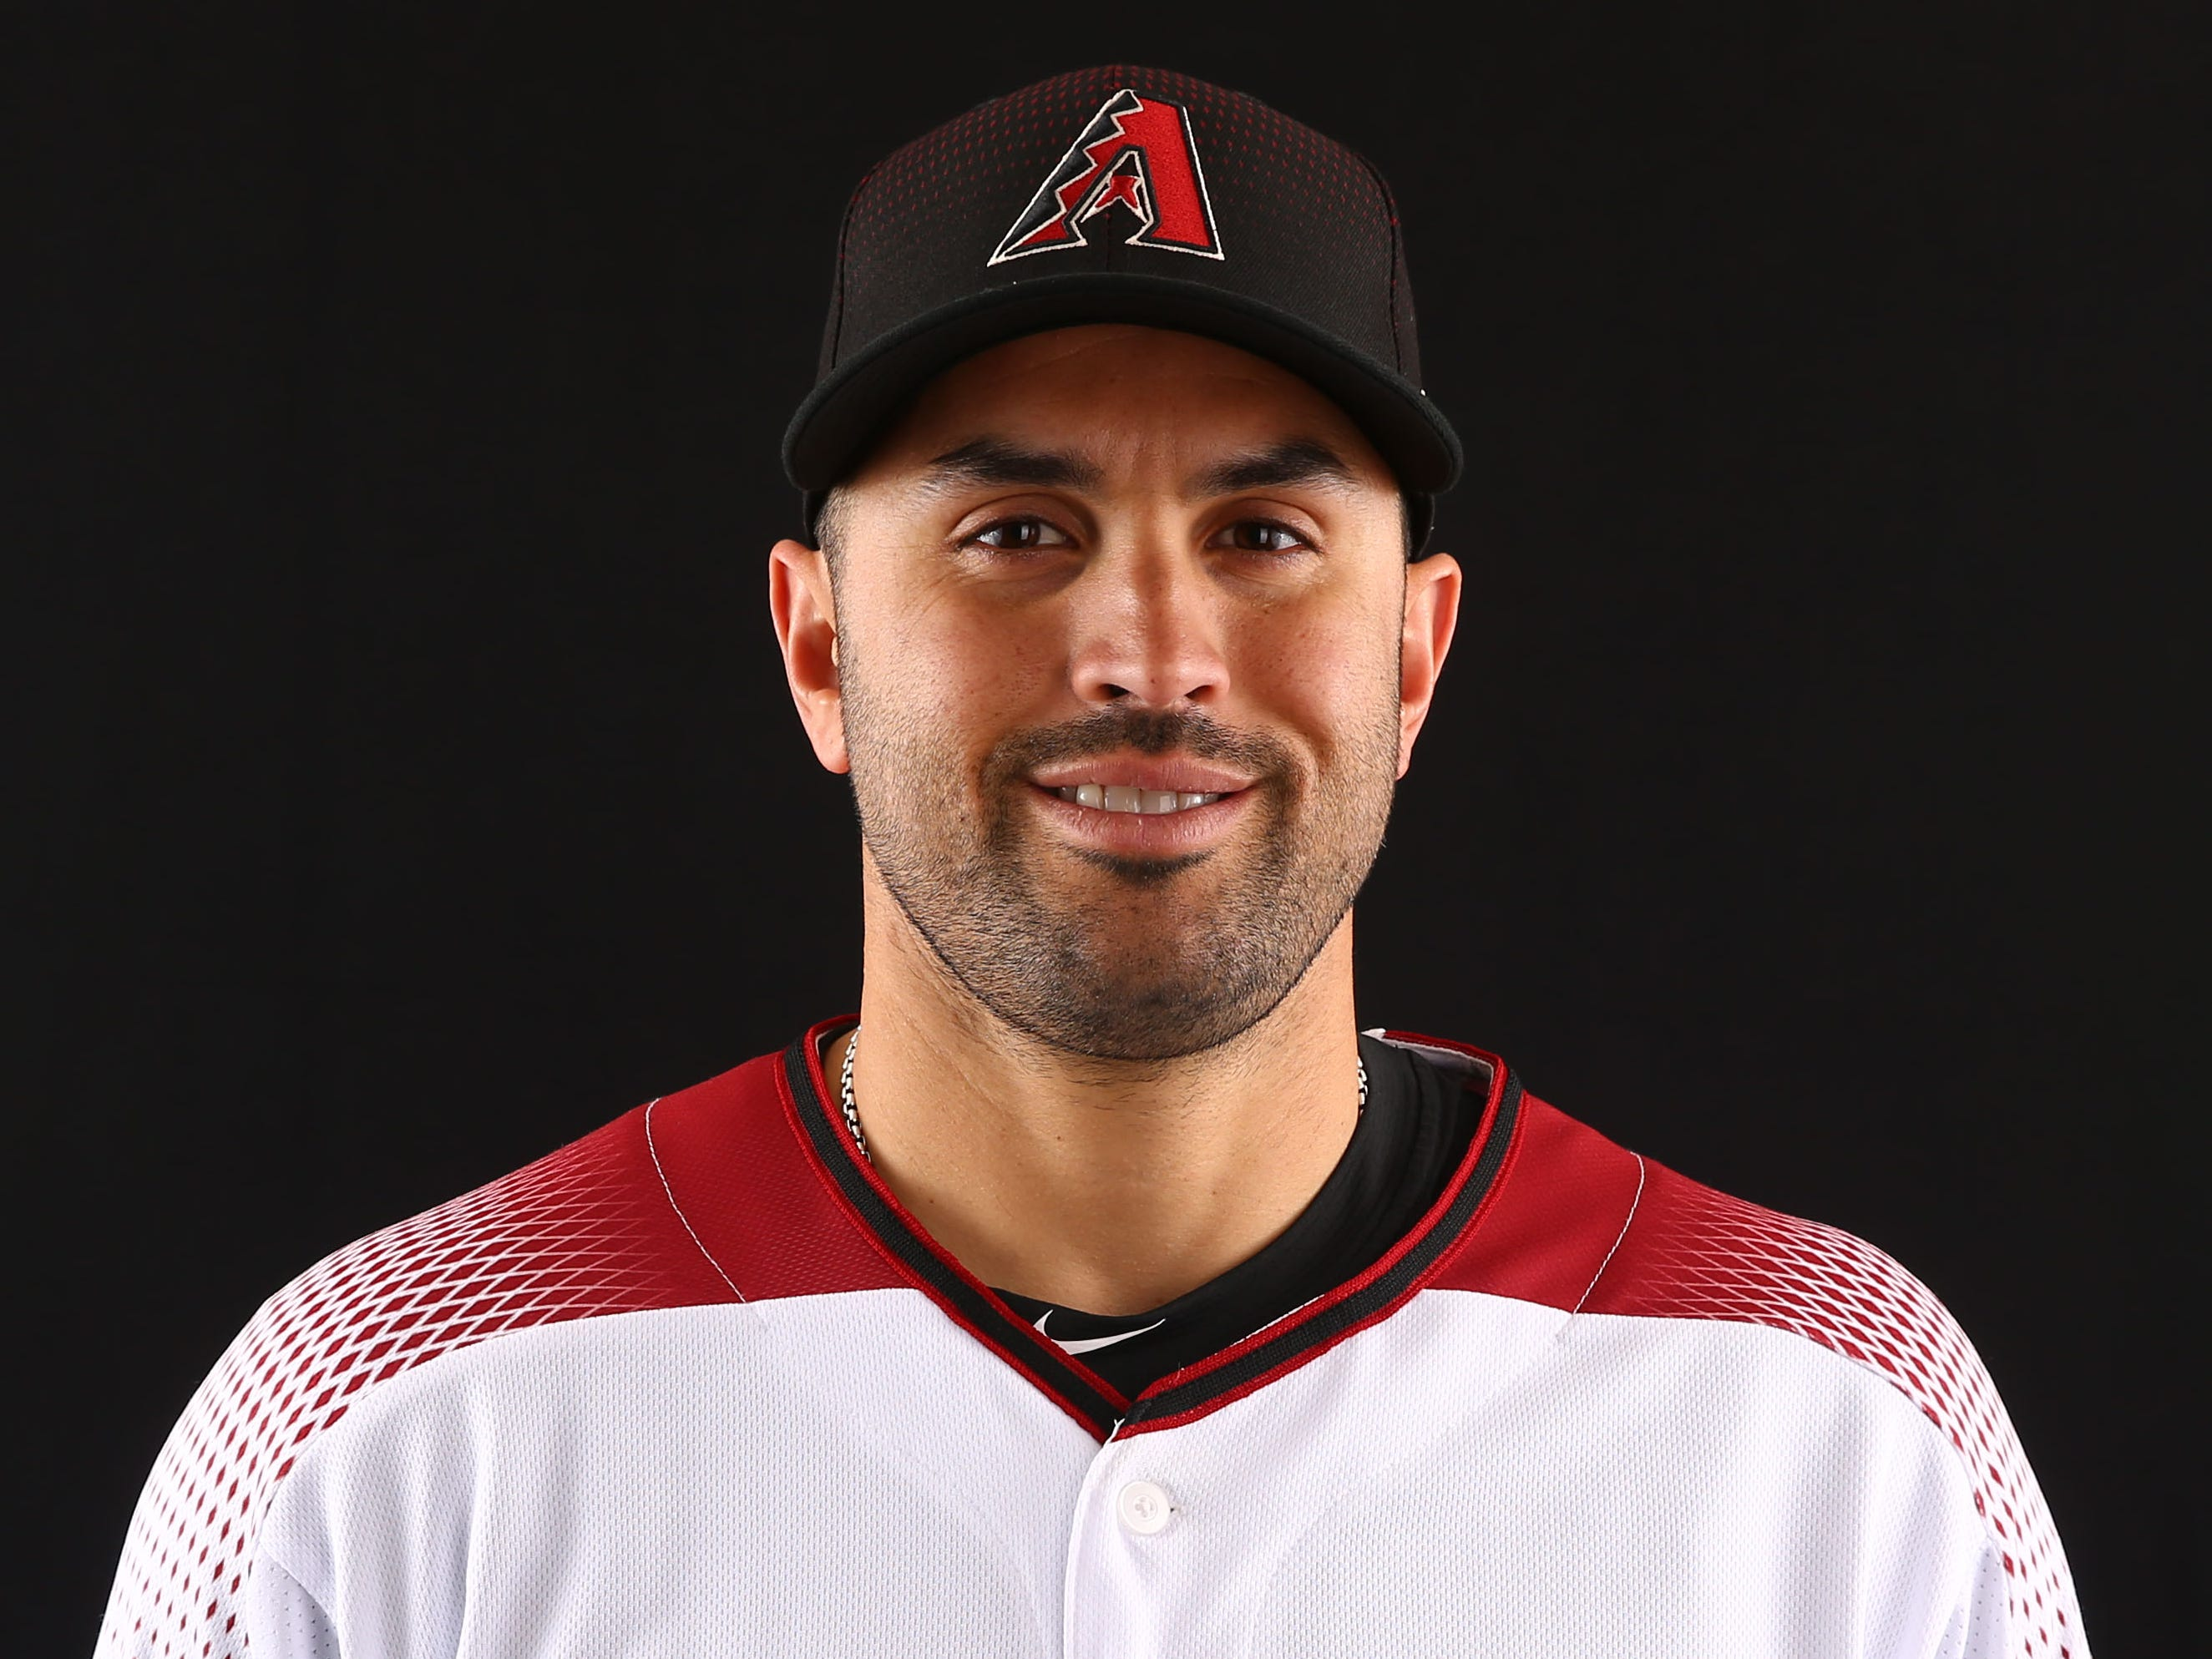 Luis Urueta of the Arizona Diamondbacks poses for a photo during the annual Spring Training Photo Day on Feb. 20 at Salt River Fields in Scottsdale, Ariz.